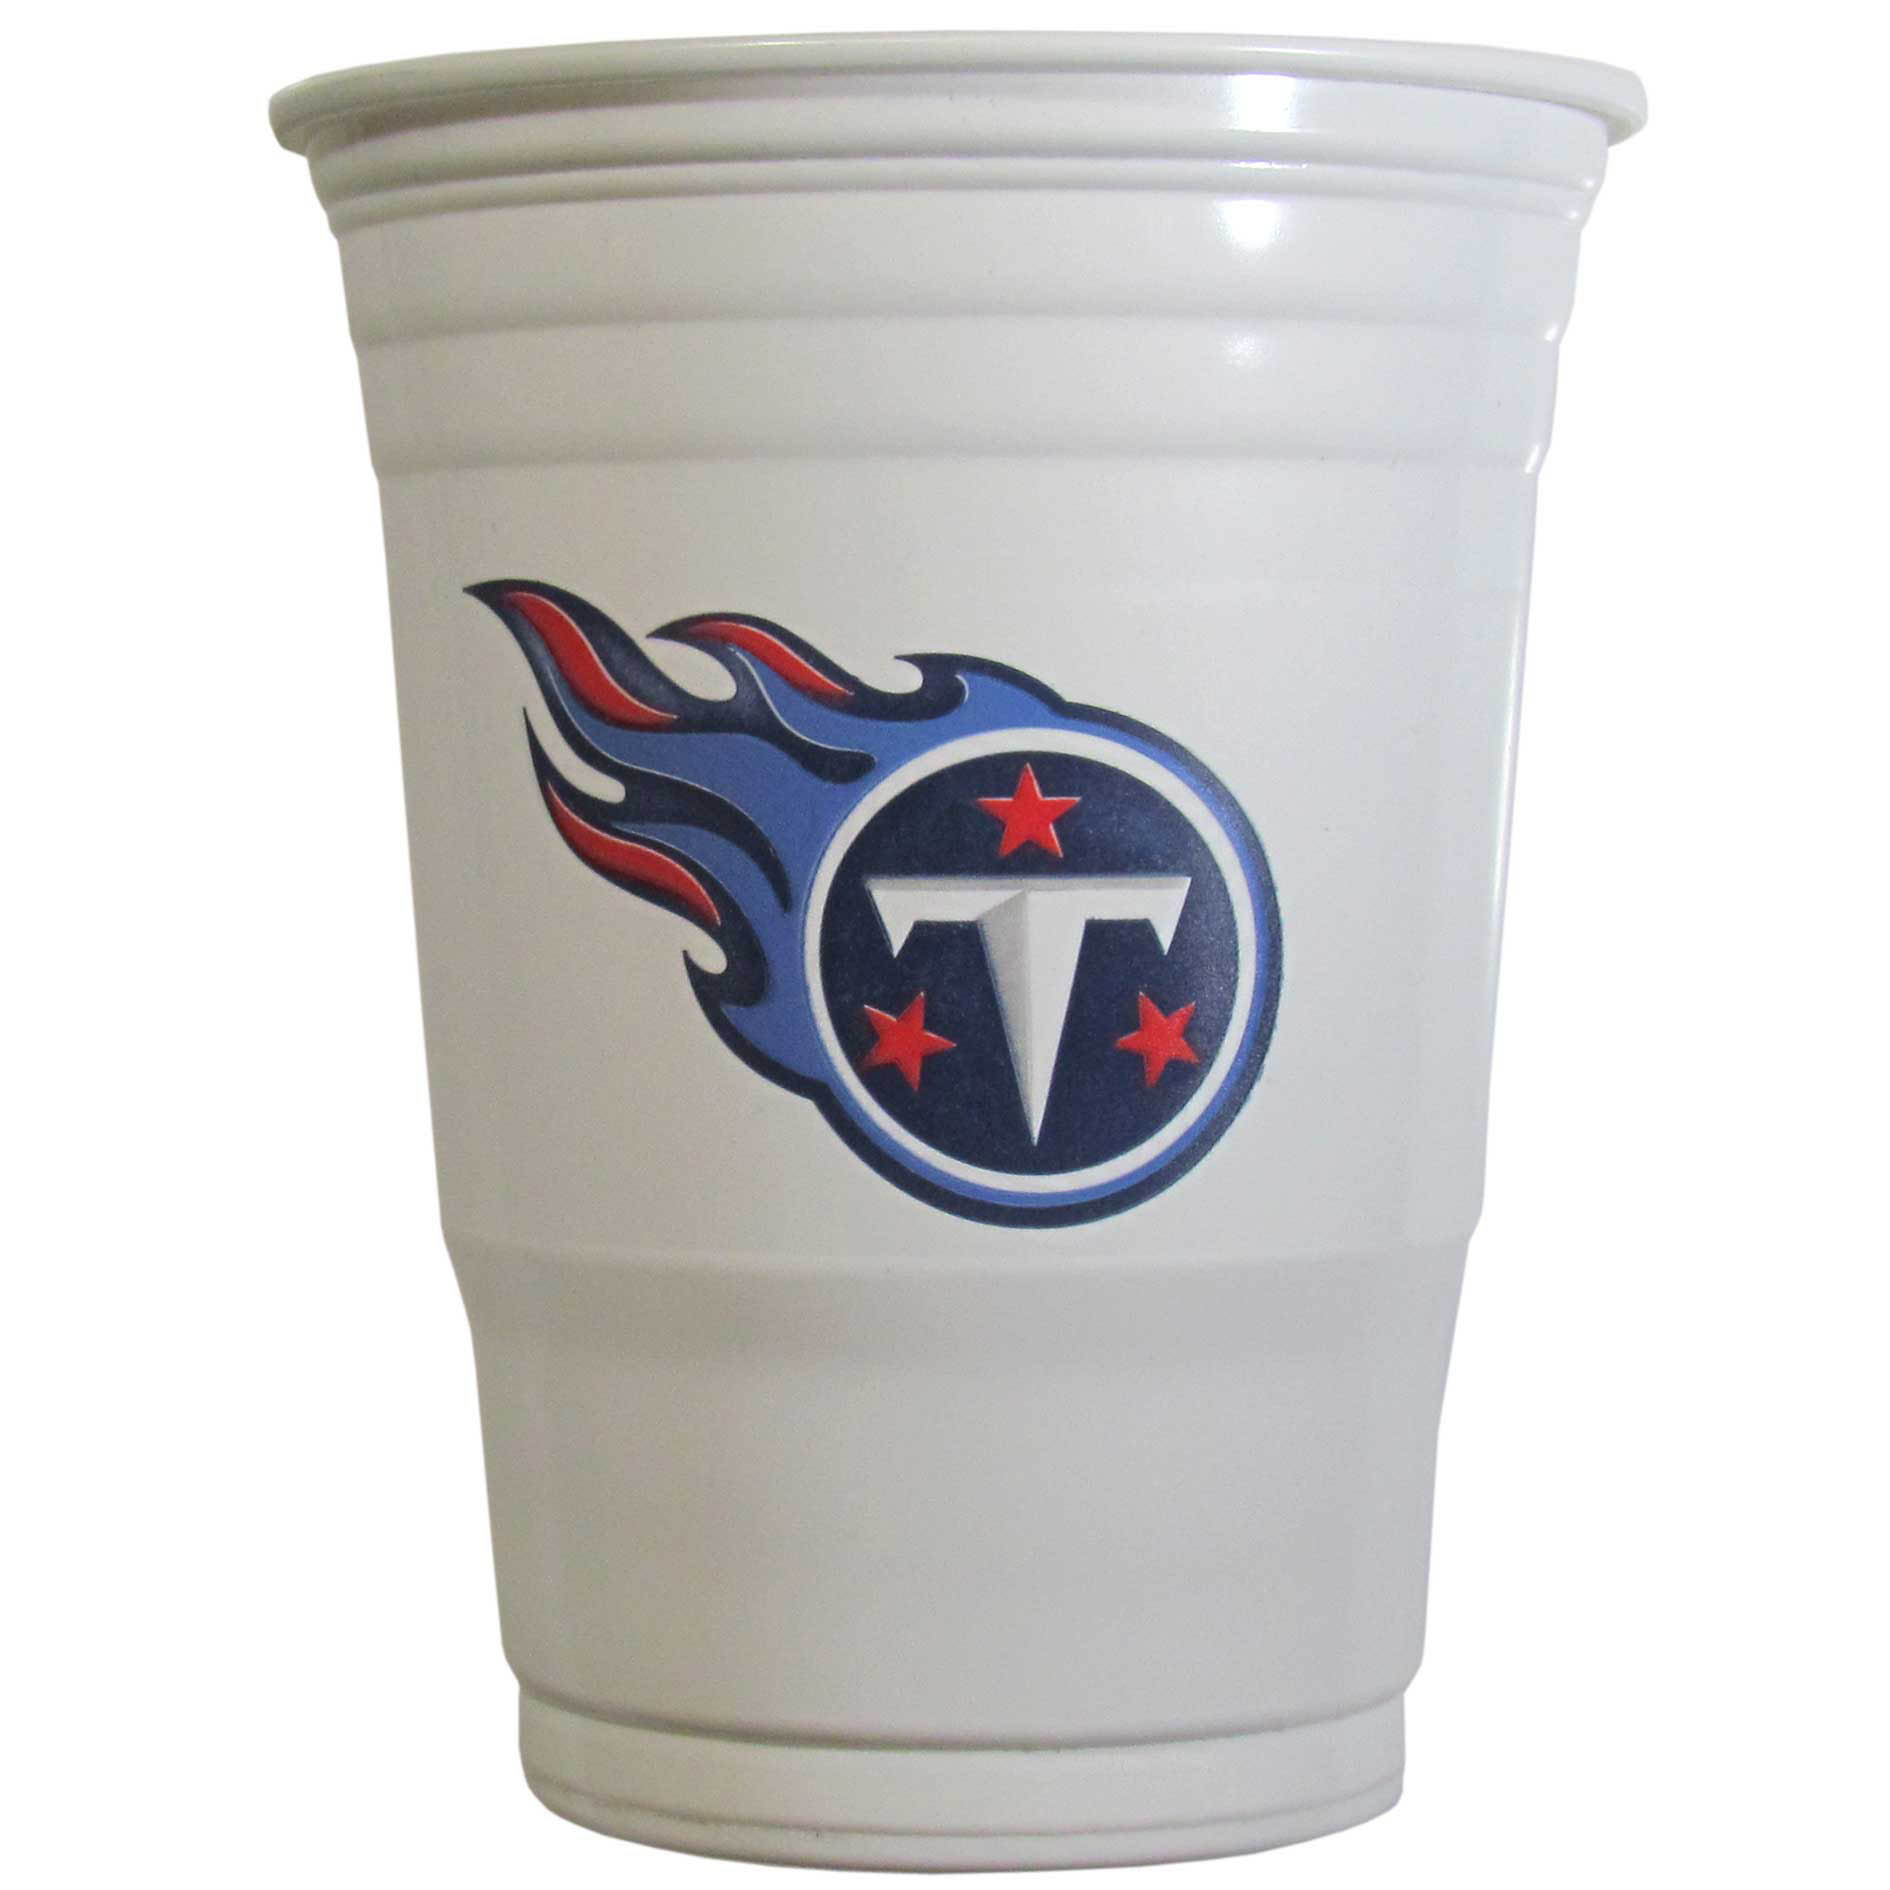 Tennessee Titans Plastic Game Day Cups 2 sleeves of 18 (36 Cups) - Our 18 ounce game day cups are what every tailgating or backyard events needs! The cups feature a big Tennessee Titans logo so you can show off your team pride. The popular 18 ounce size is perfect for drinks or ping pong balls! 2 sleeves of 18 cups, 36 cups in total.